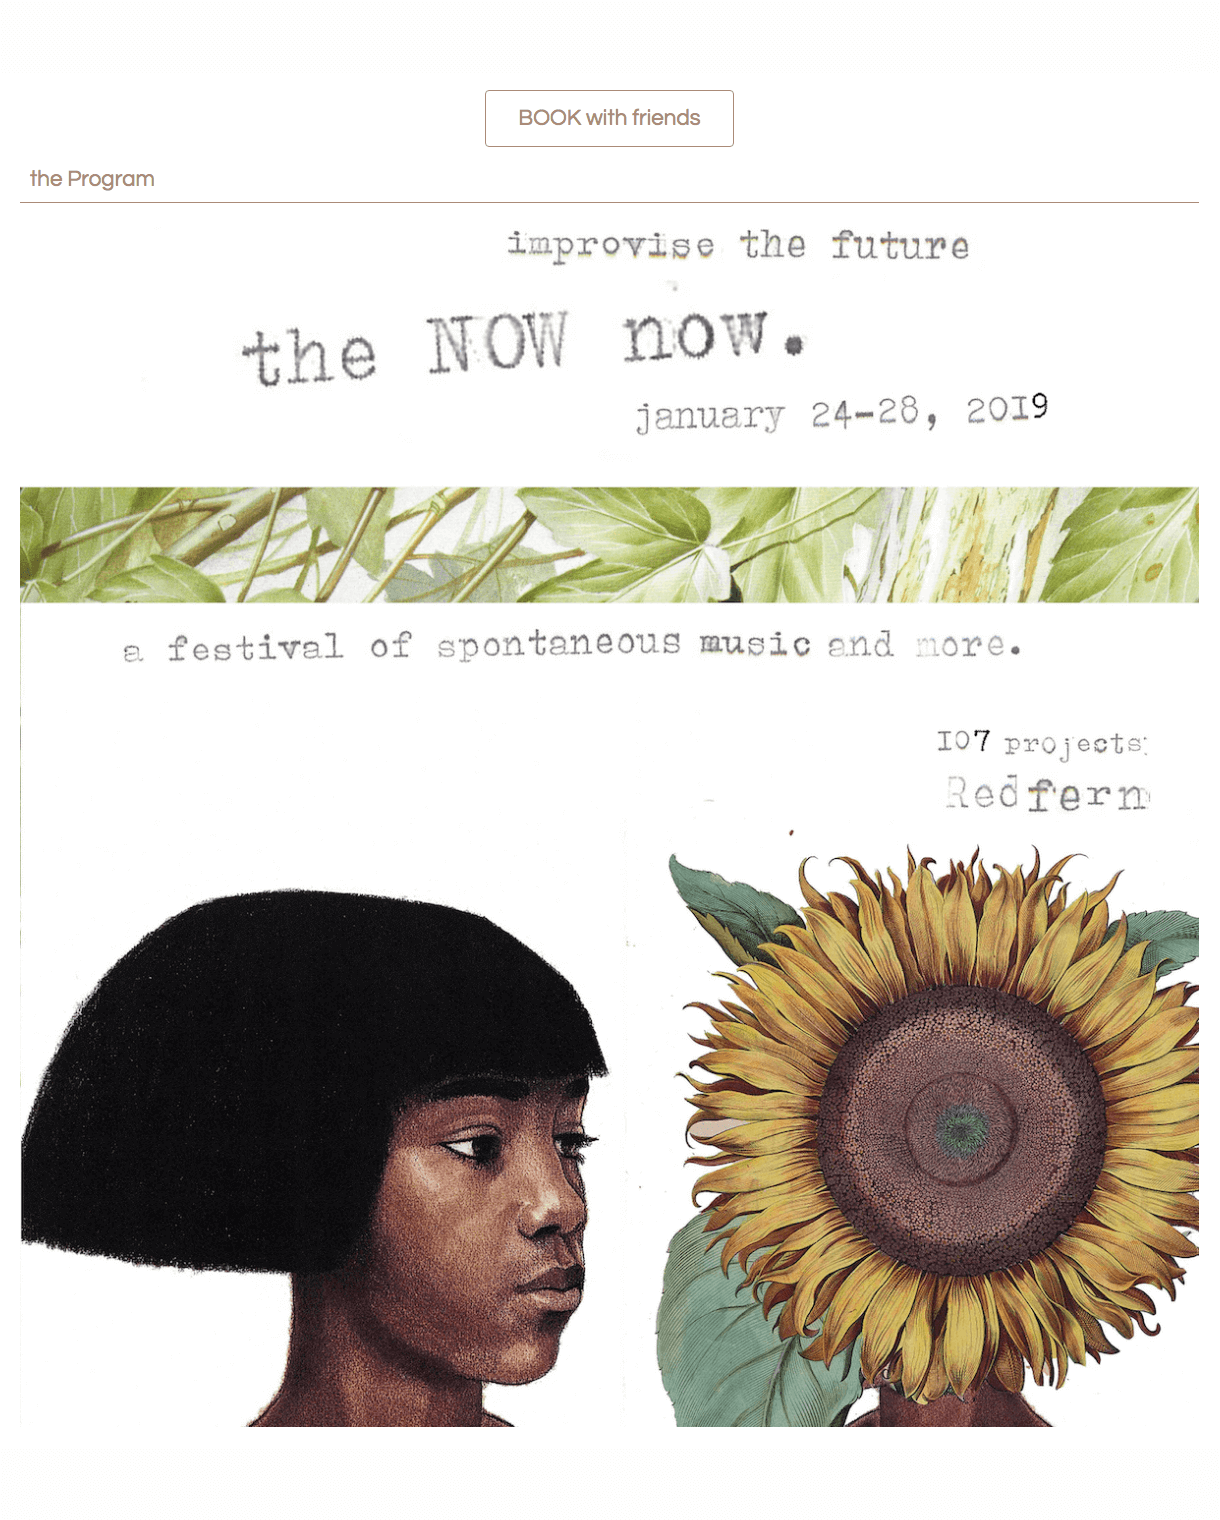 the Now now 2019 festival website